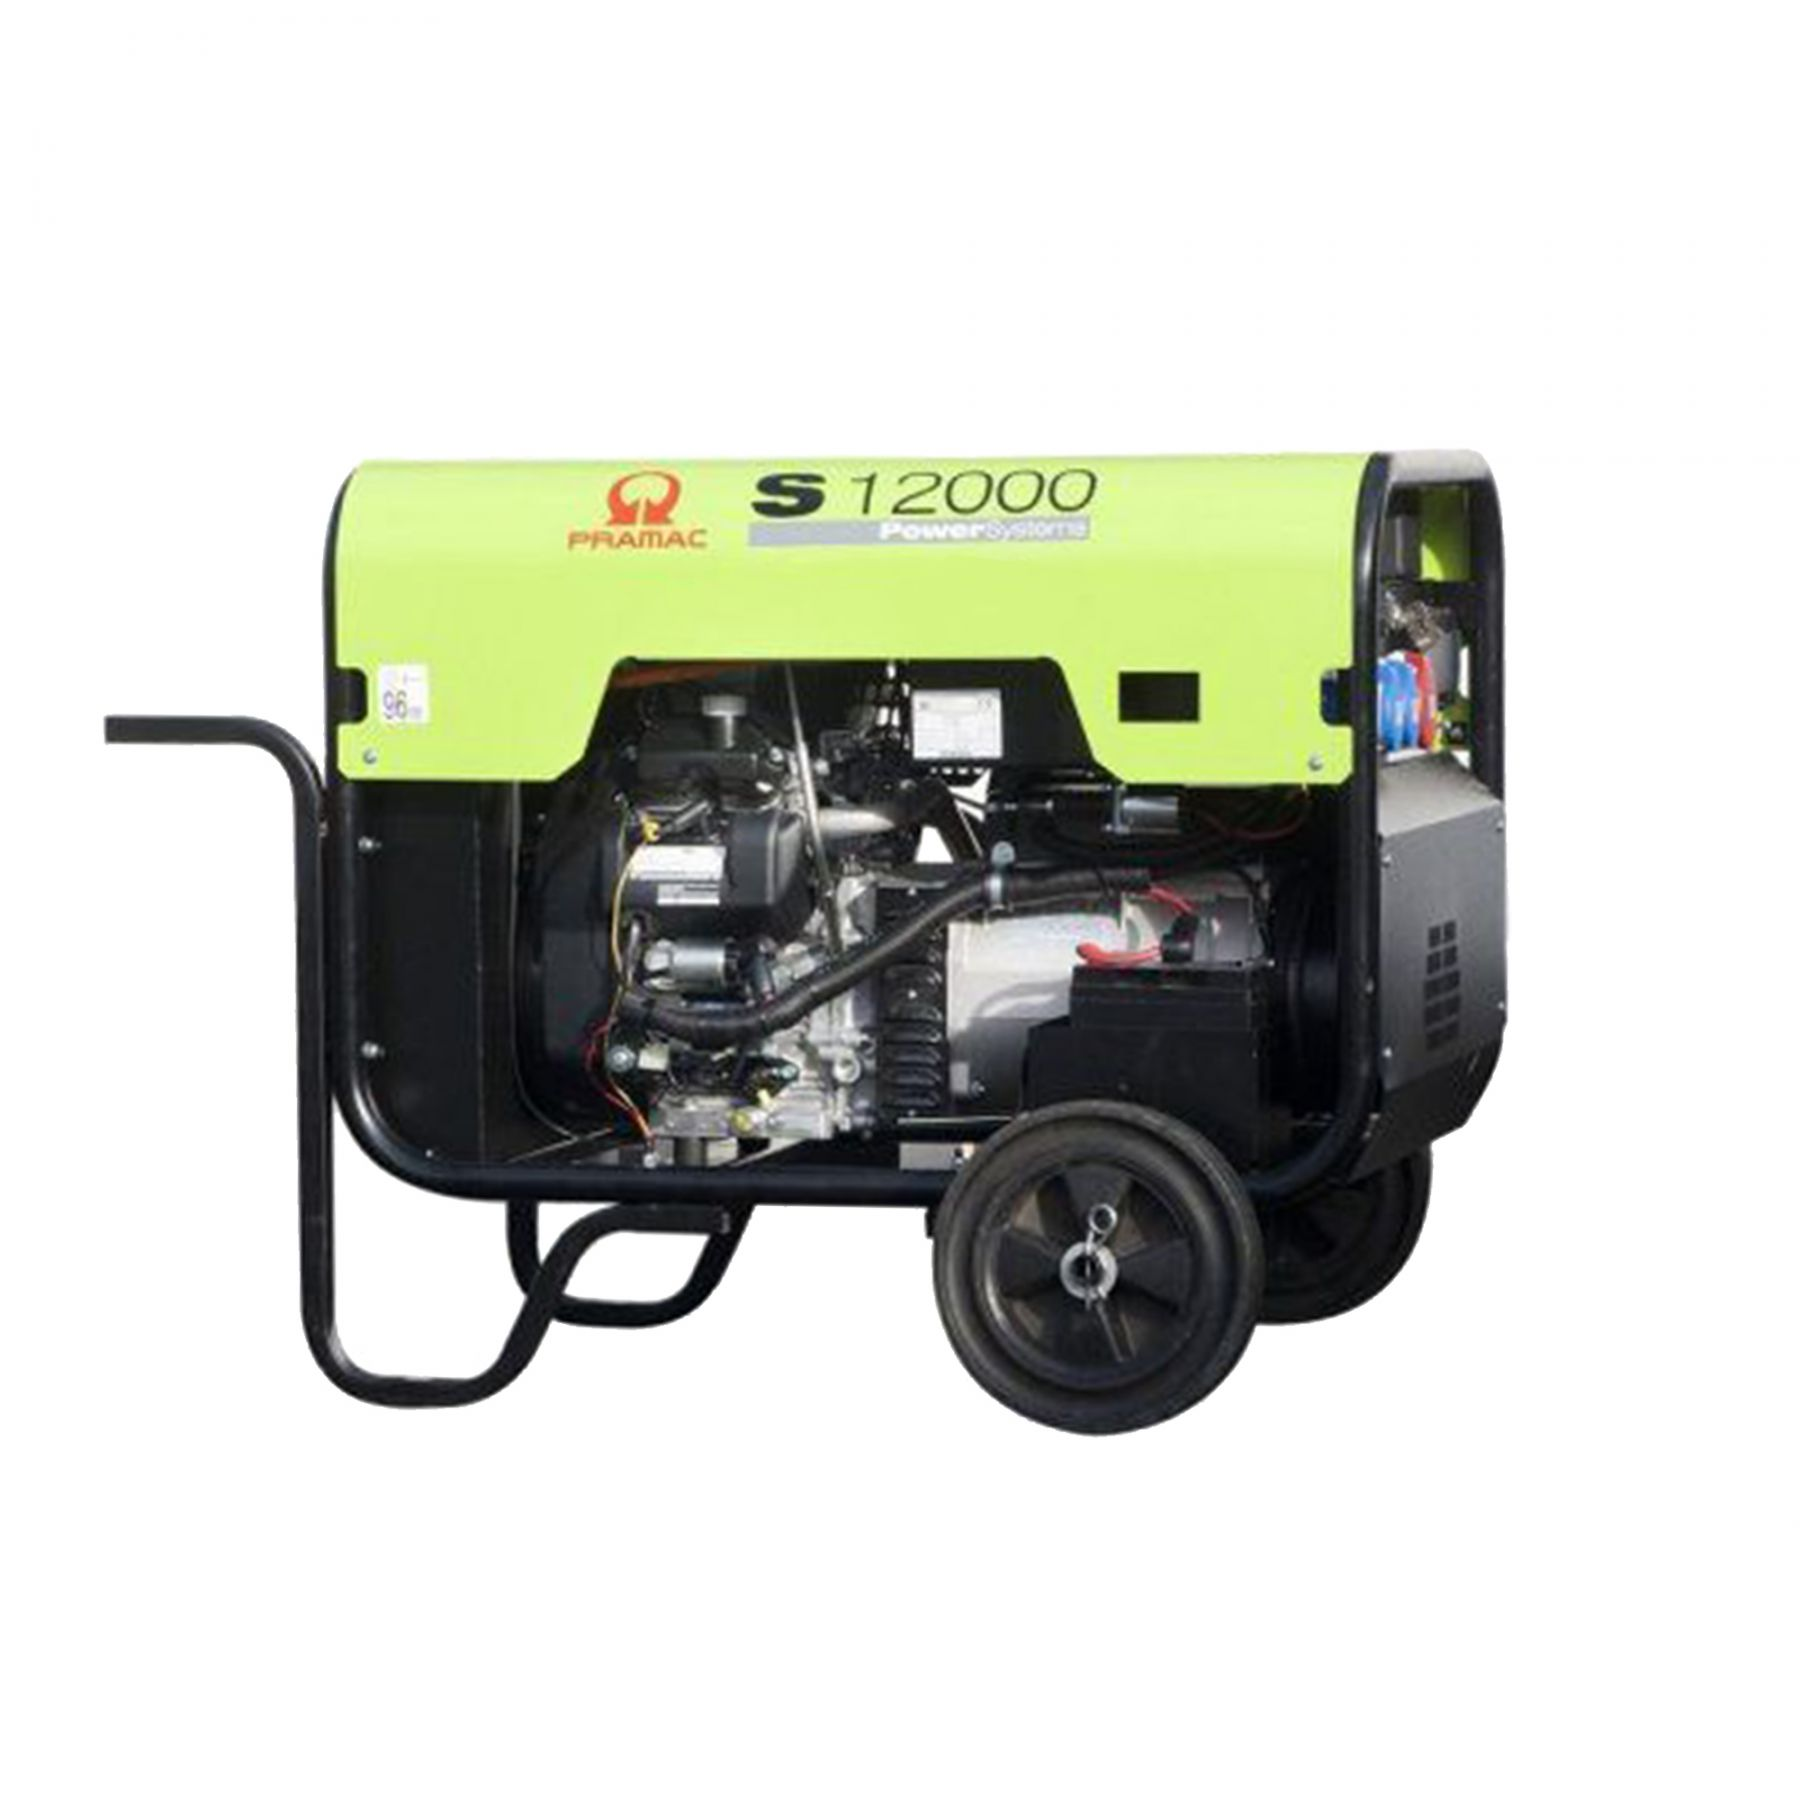 Pramac S12000 Power Systems Generator Hire Inlec